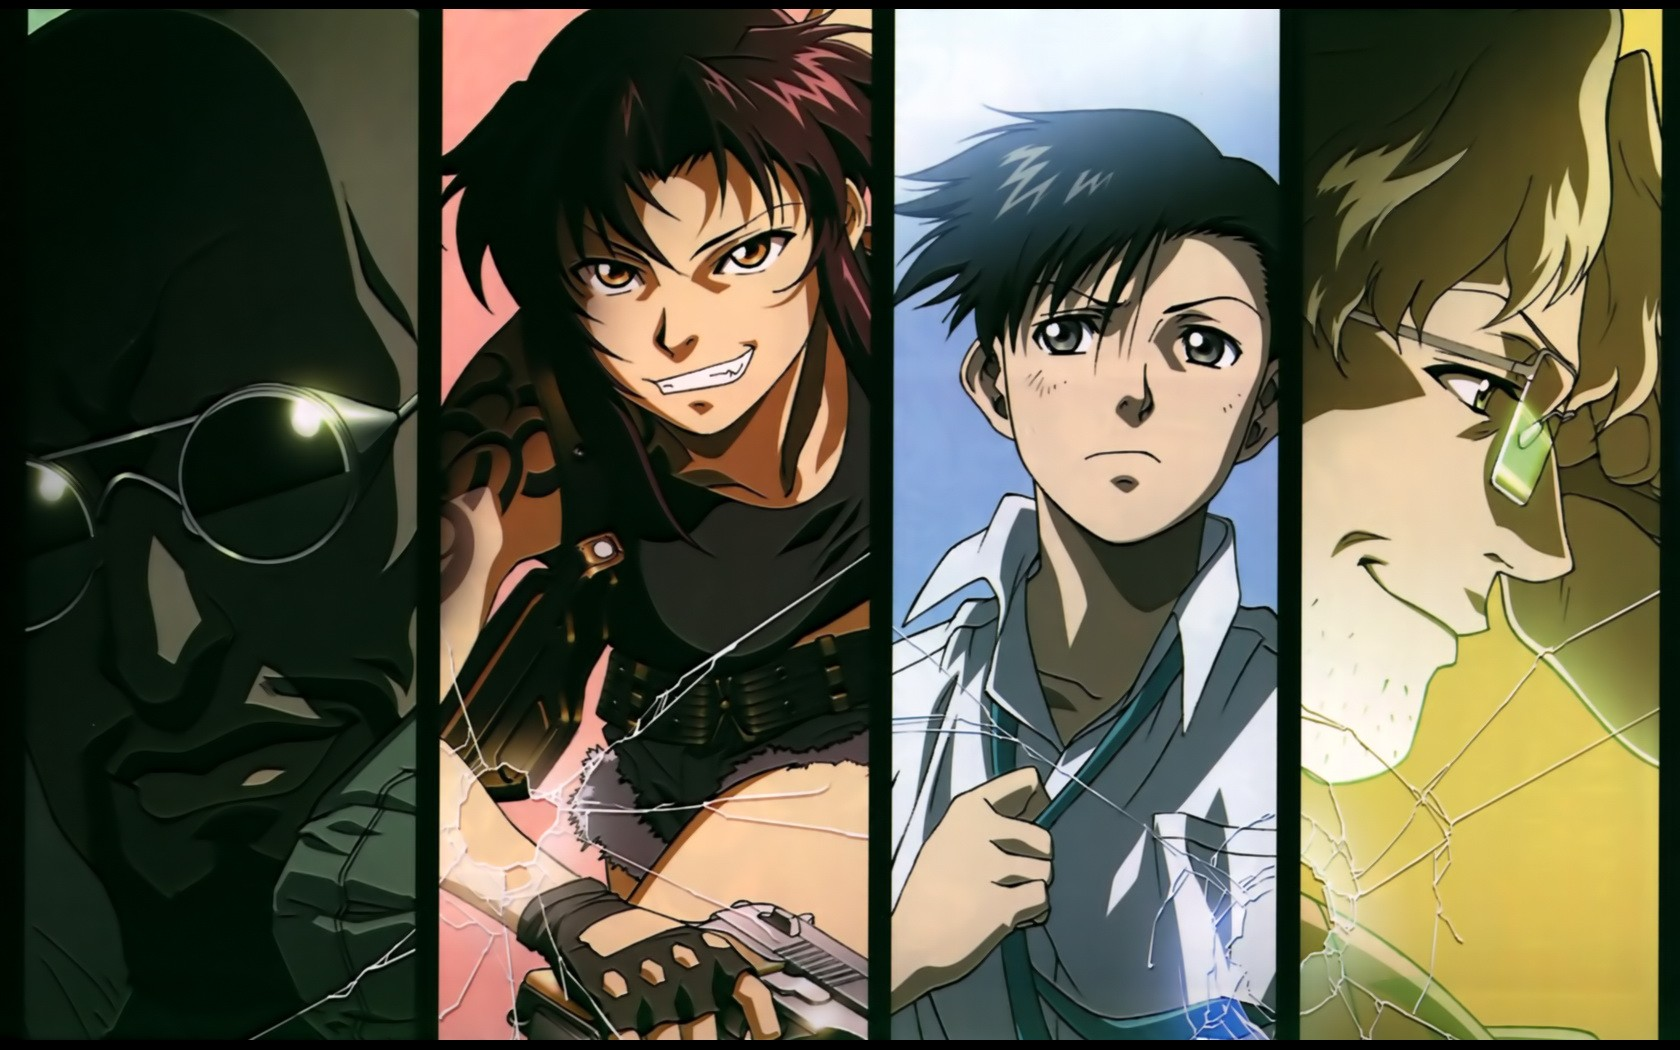 collage ducth benny anime rokuro black lagoon panels anime boys gun okajima